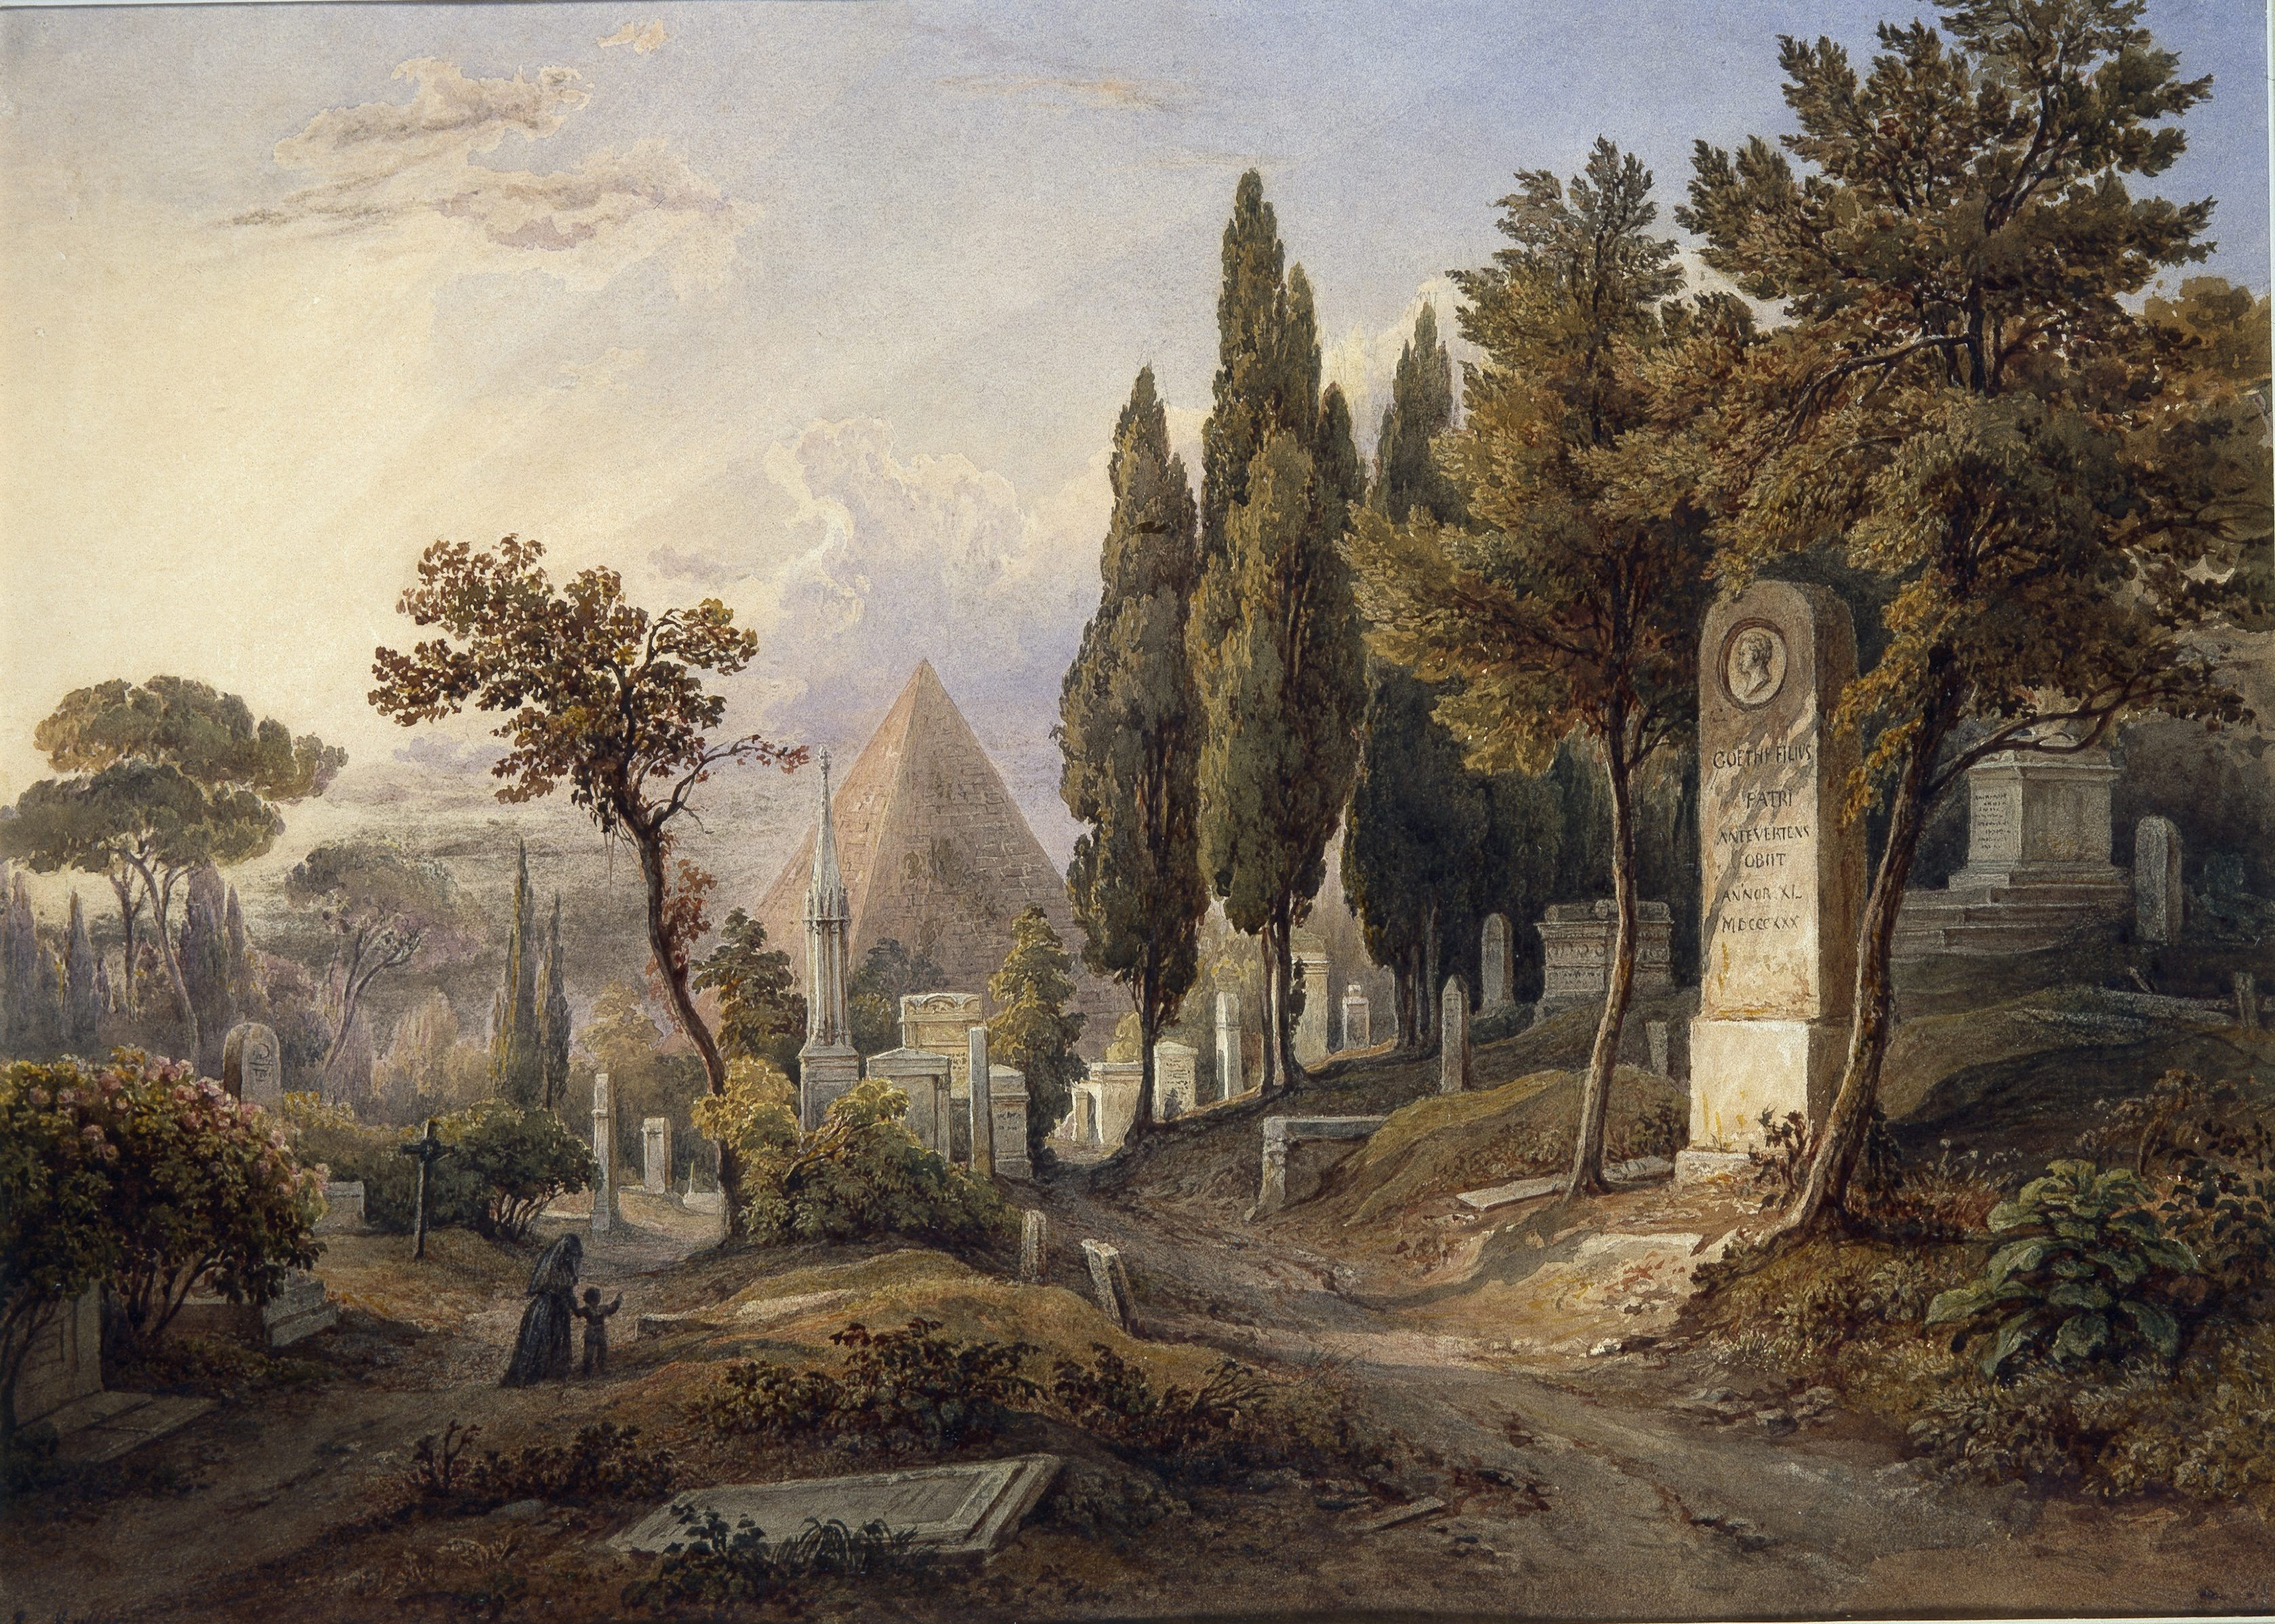 THE PROTESTANT CEMETERY AT ROME IN ART AND HISTORY - a talk by Nicholas Stanley-Price